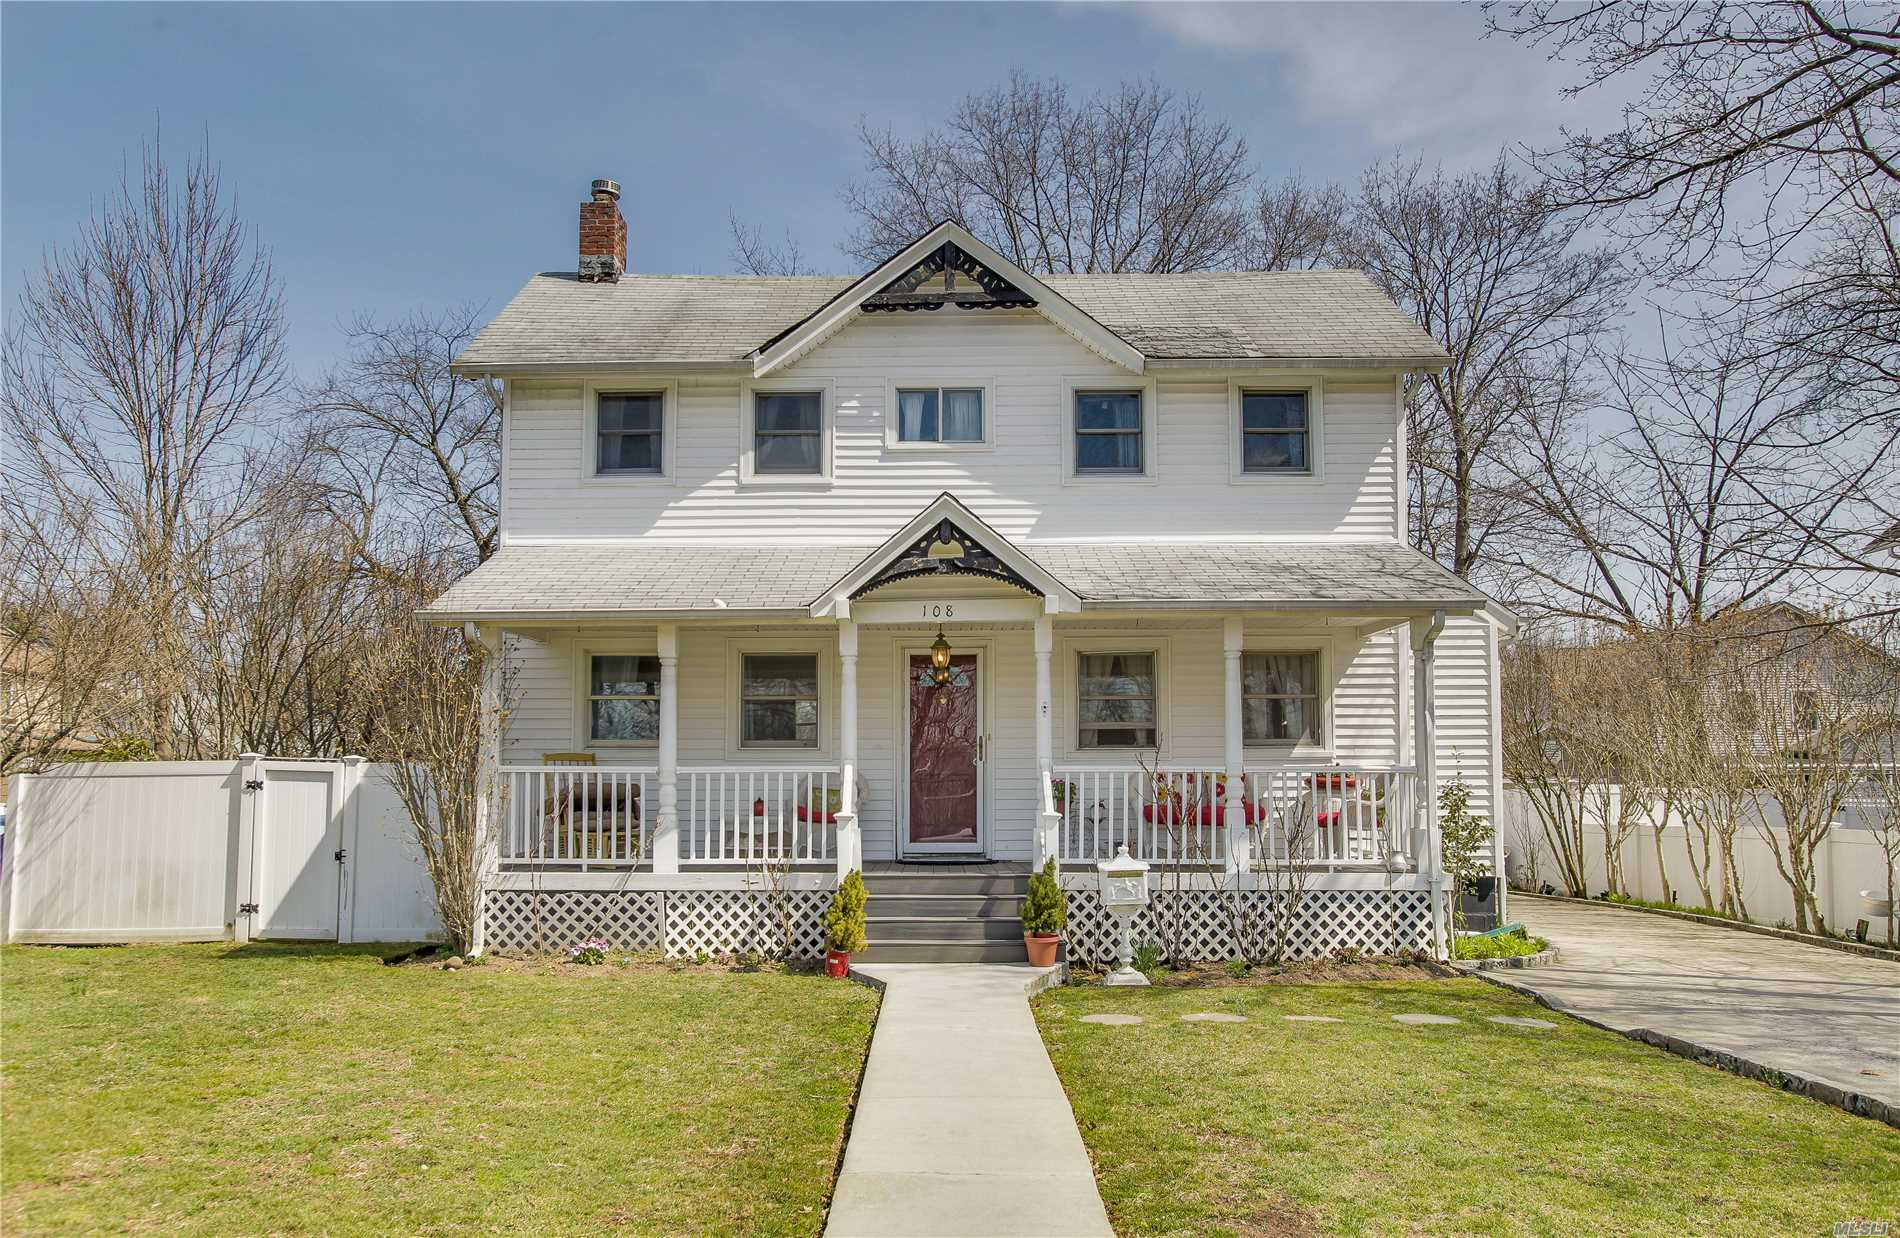 Classic two family colonial located on an oversized lot on a dead end directly across from Grant Park -- with views of the pond from the front porch! Hewlett schools, conveniently located nearby to Peninsula Blvd, the LIRR station, and all of the shopping and dining that Hewlett, Lynbrook and Valley Stream have to offer! This one is not to be missed.